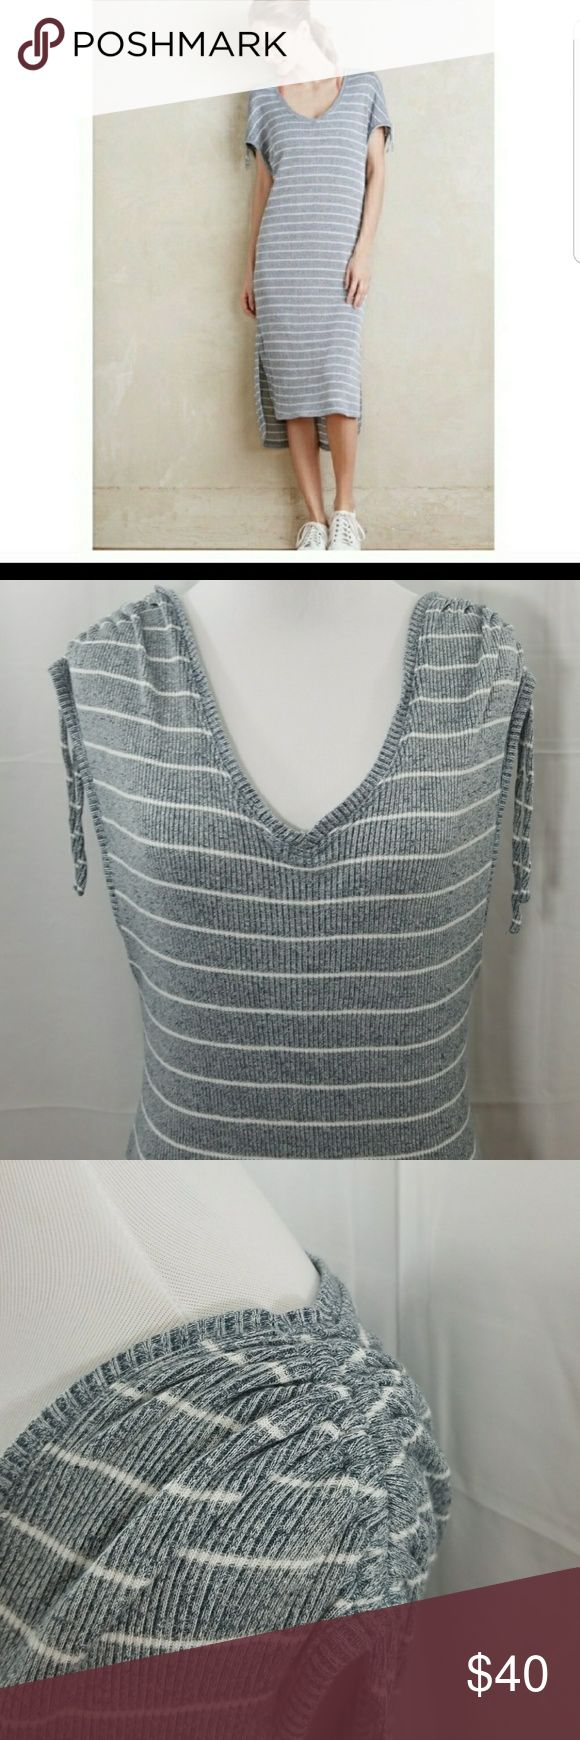 """Anthro - Saturday Sunday Gray striped dress This is an Anthropology Saturday Sunday dress .The Dress is Gray and white striped with a very comfortable Jersey material. It features a  vneck with adjustable straps at the shoulders and a button tie back on the back of the dress It also has a high low hemline. E22 Pit to pit 16"""" Length 43"""" Anthropology Dresses Midi"""